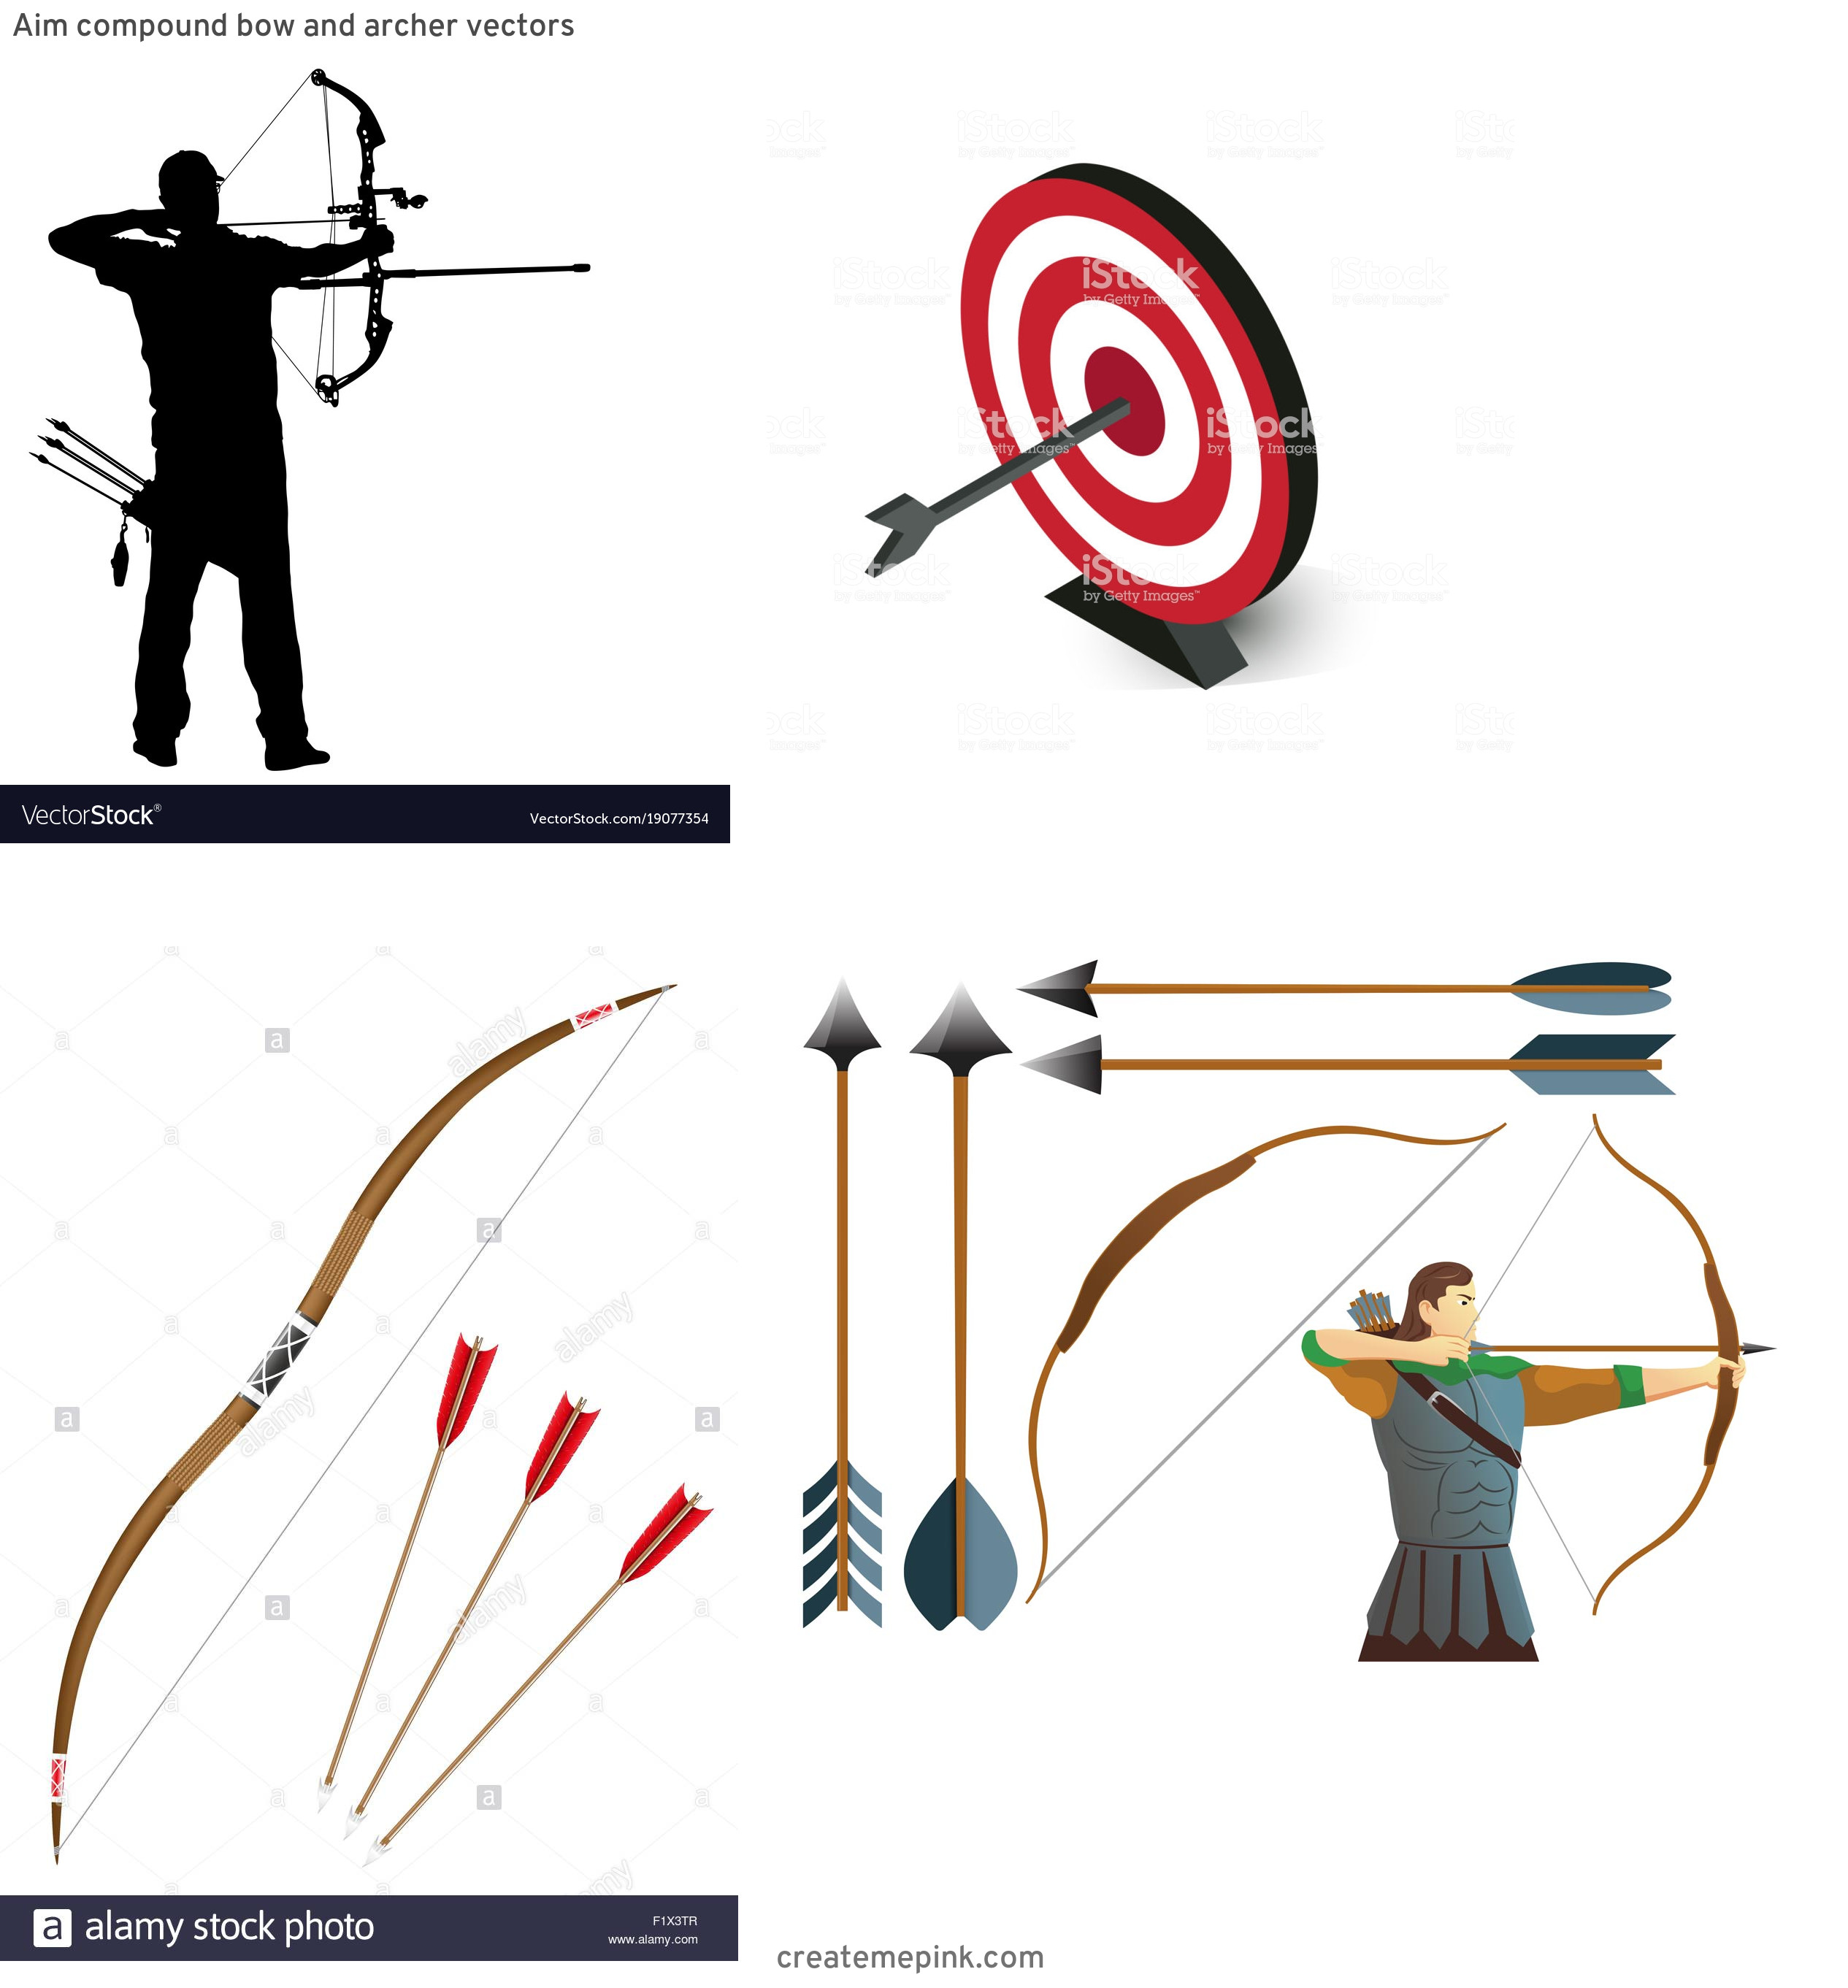 Target Bow And Arrow Vector: Aim Compound Bow And Archer Vectors